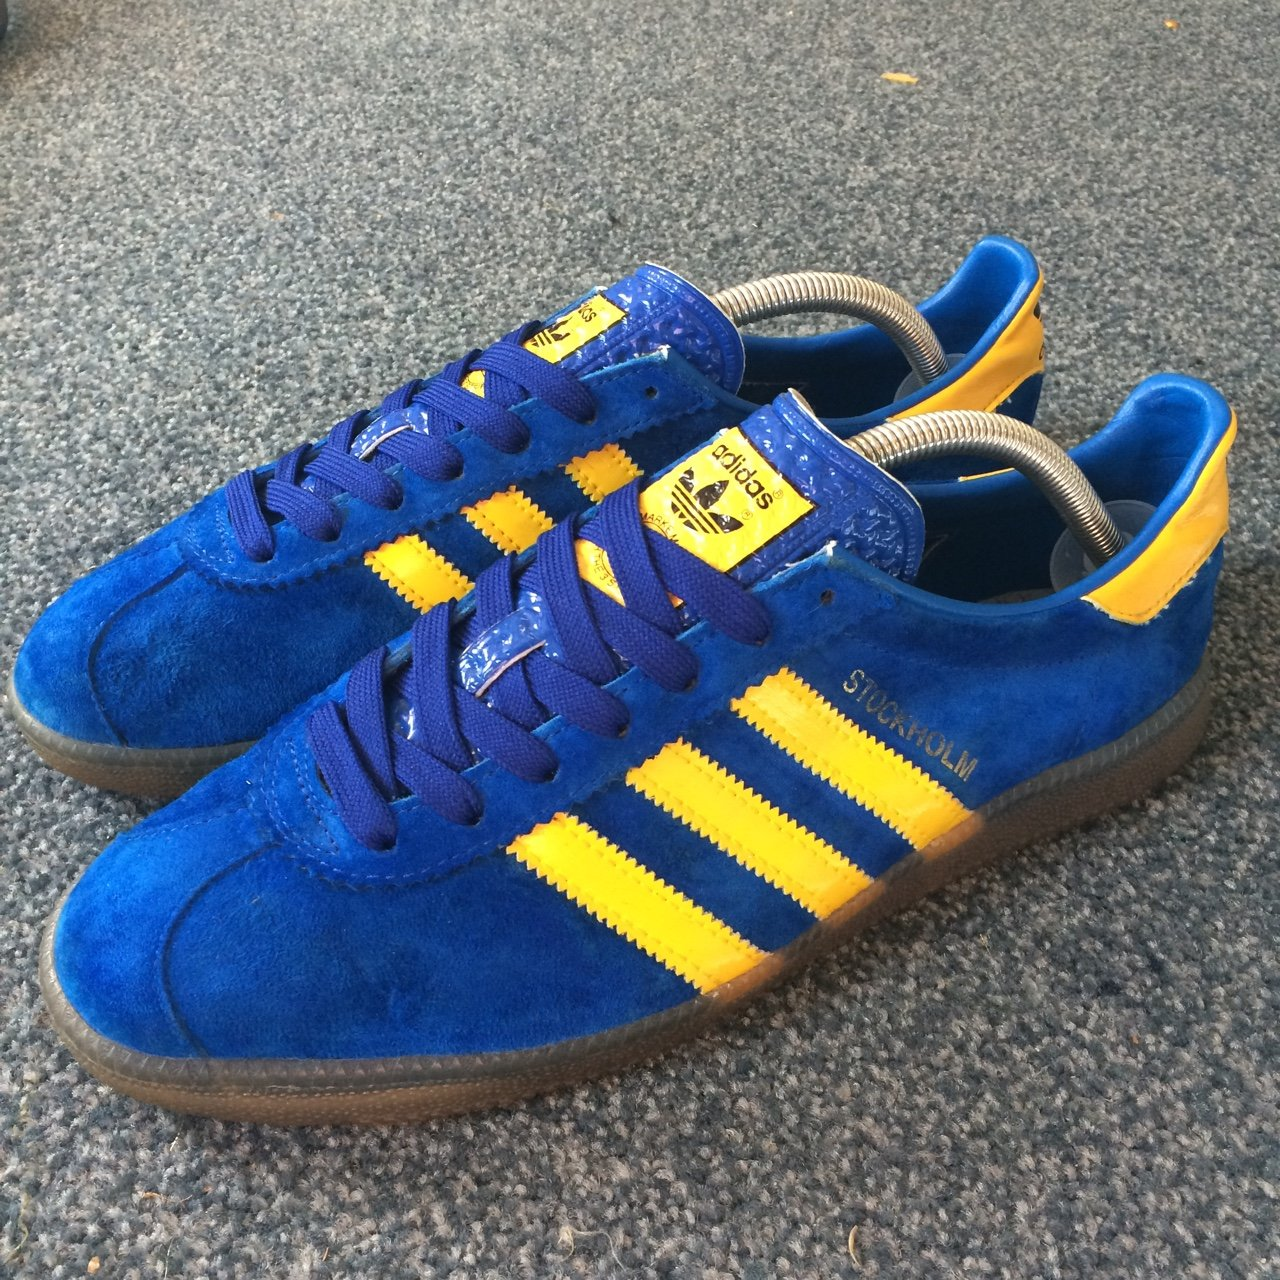 factory price 80239 5cb34 2008 Adidas Stockholm UK8.5 will fit 9. Absolutely lovely as